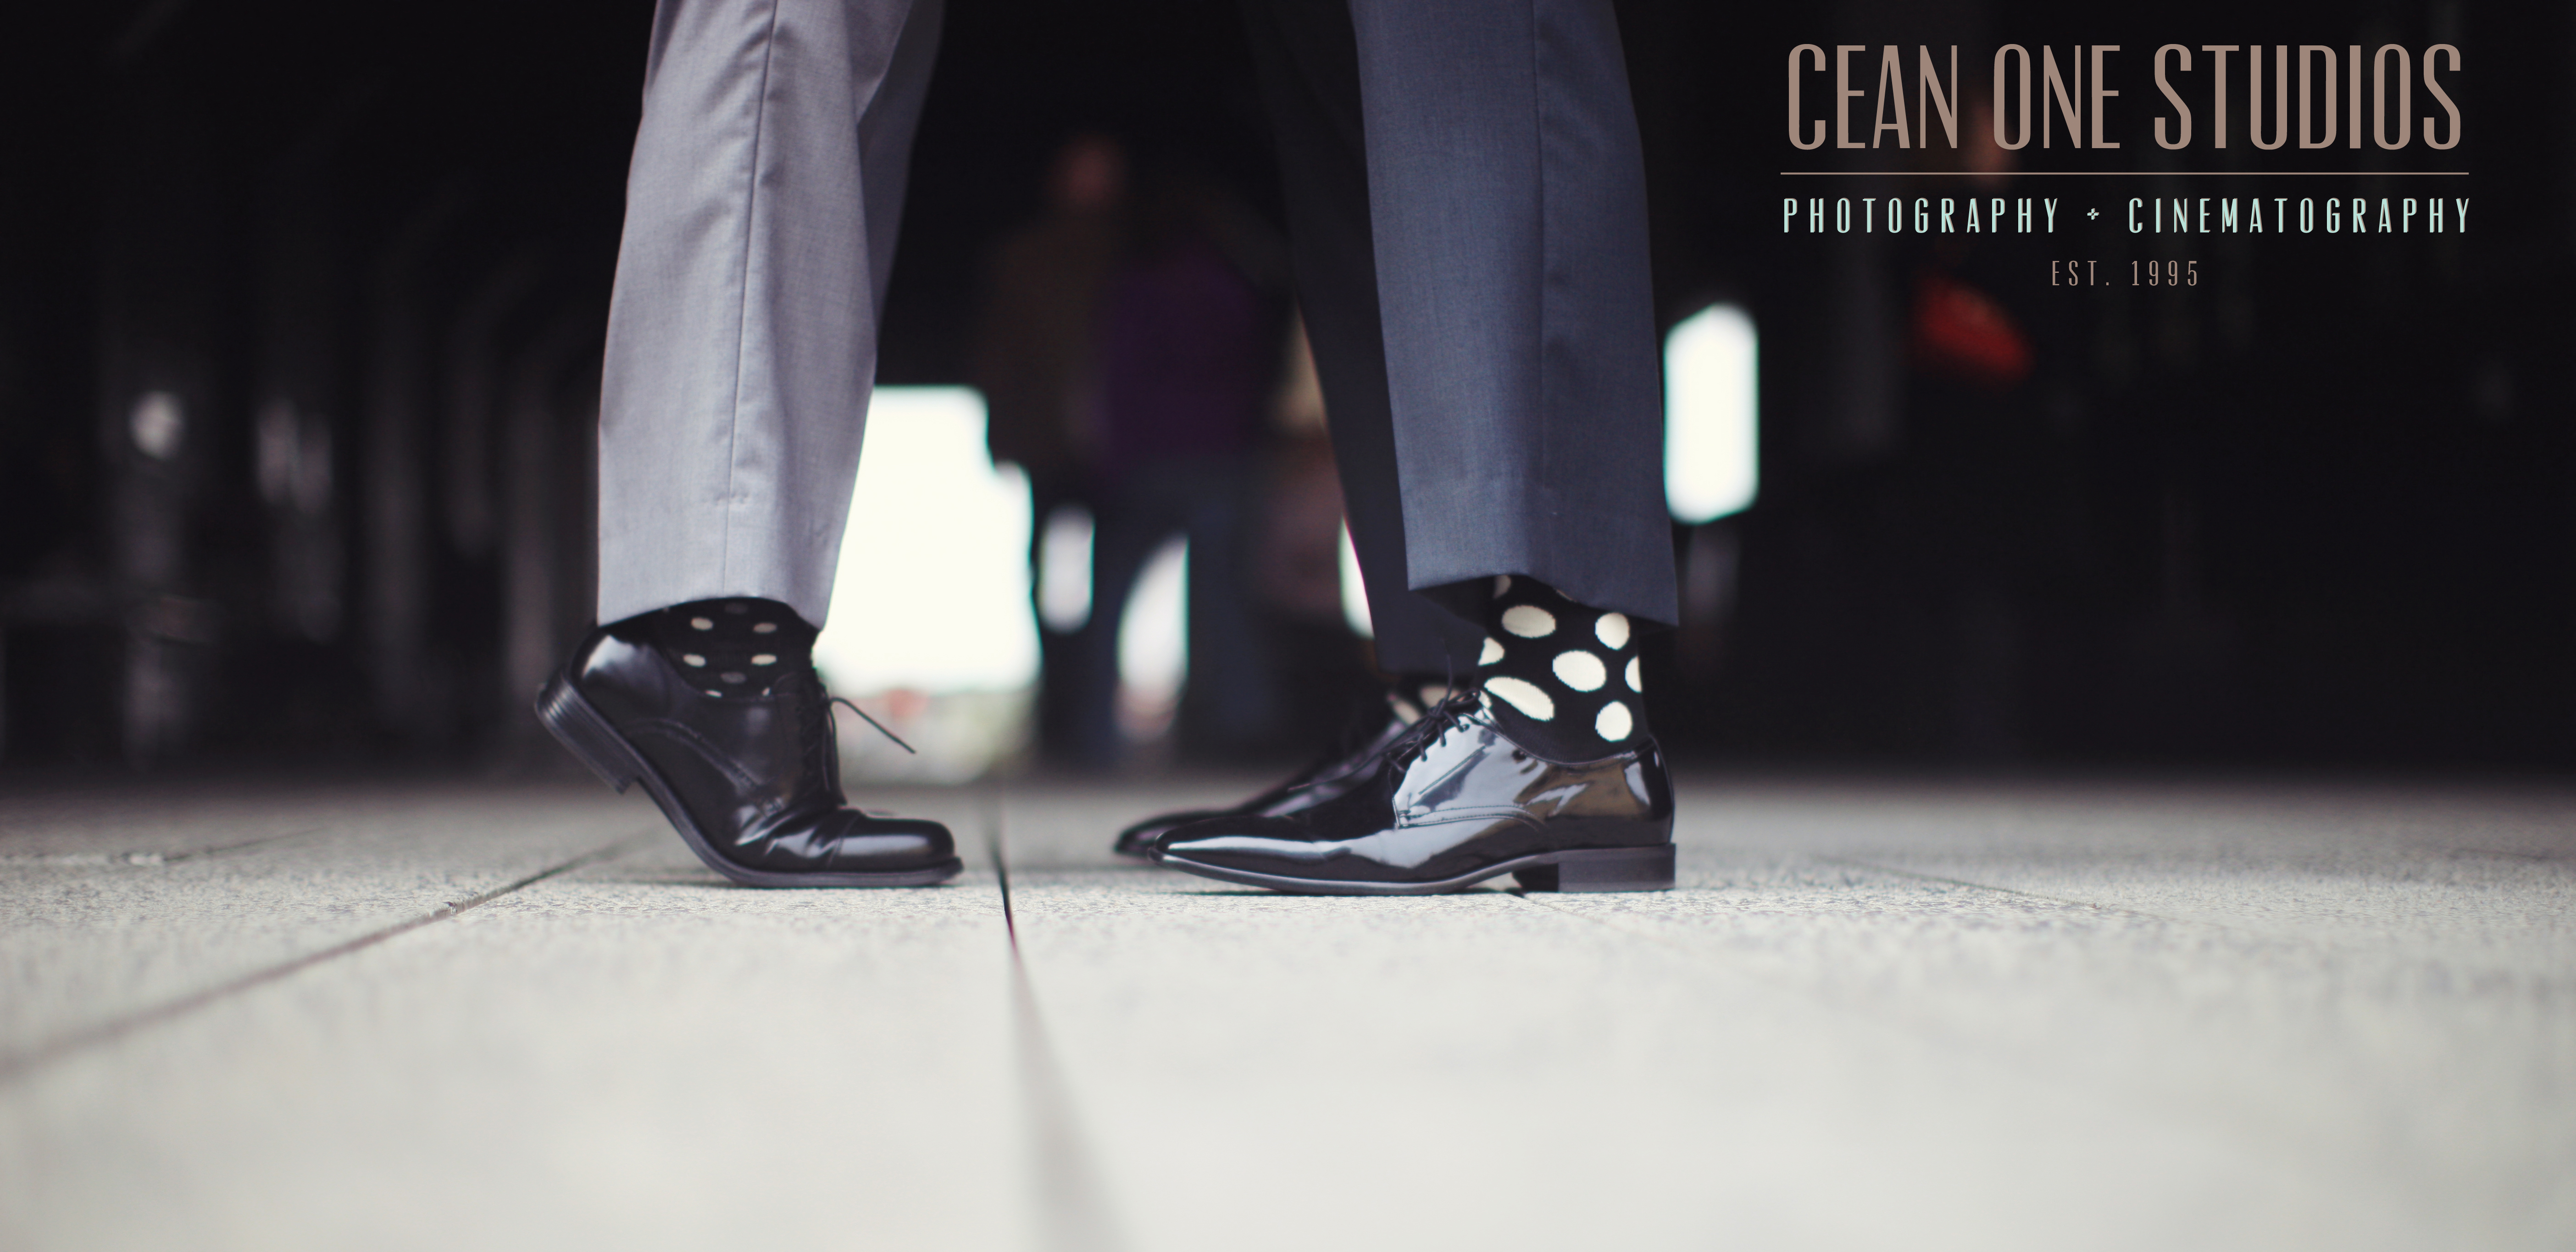 Two men with fun socks | Cean One Studios Love is Love | San Diego Wedding Photographer